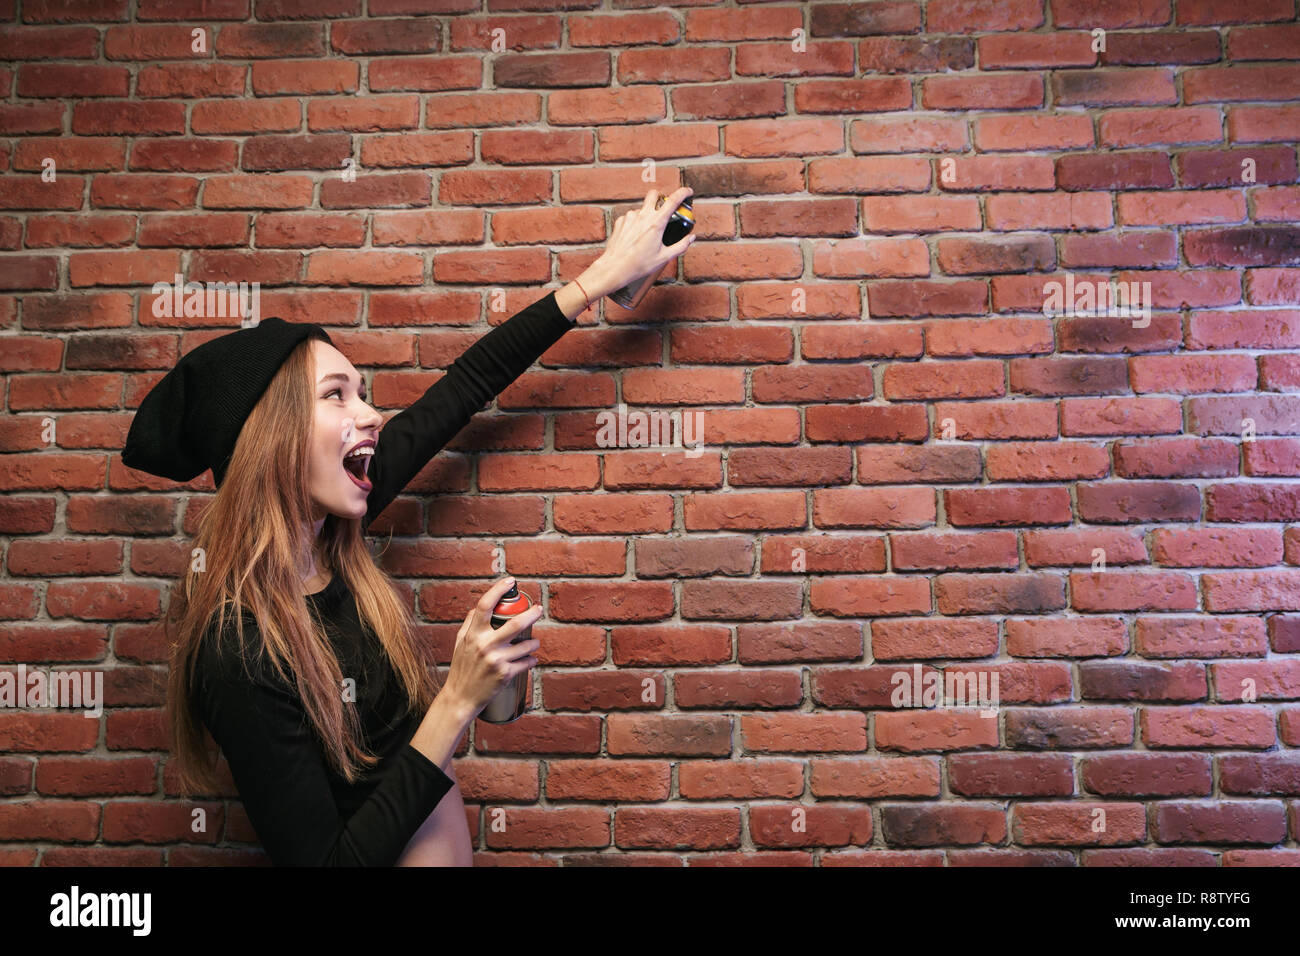 Image Of Beautiful Hip Hop Woman 20s Drawing On Brick Wall With